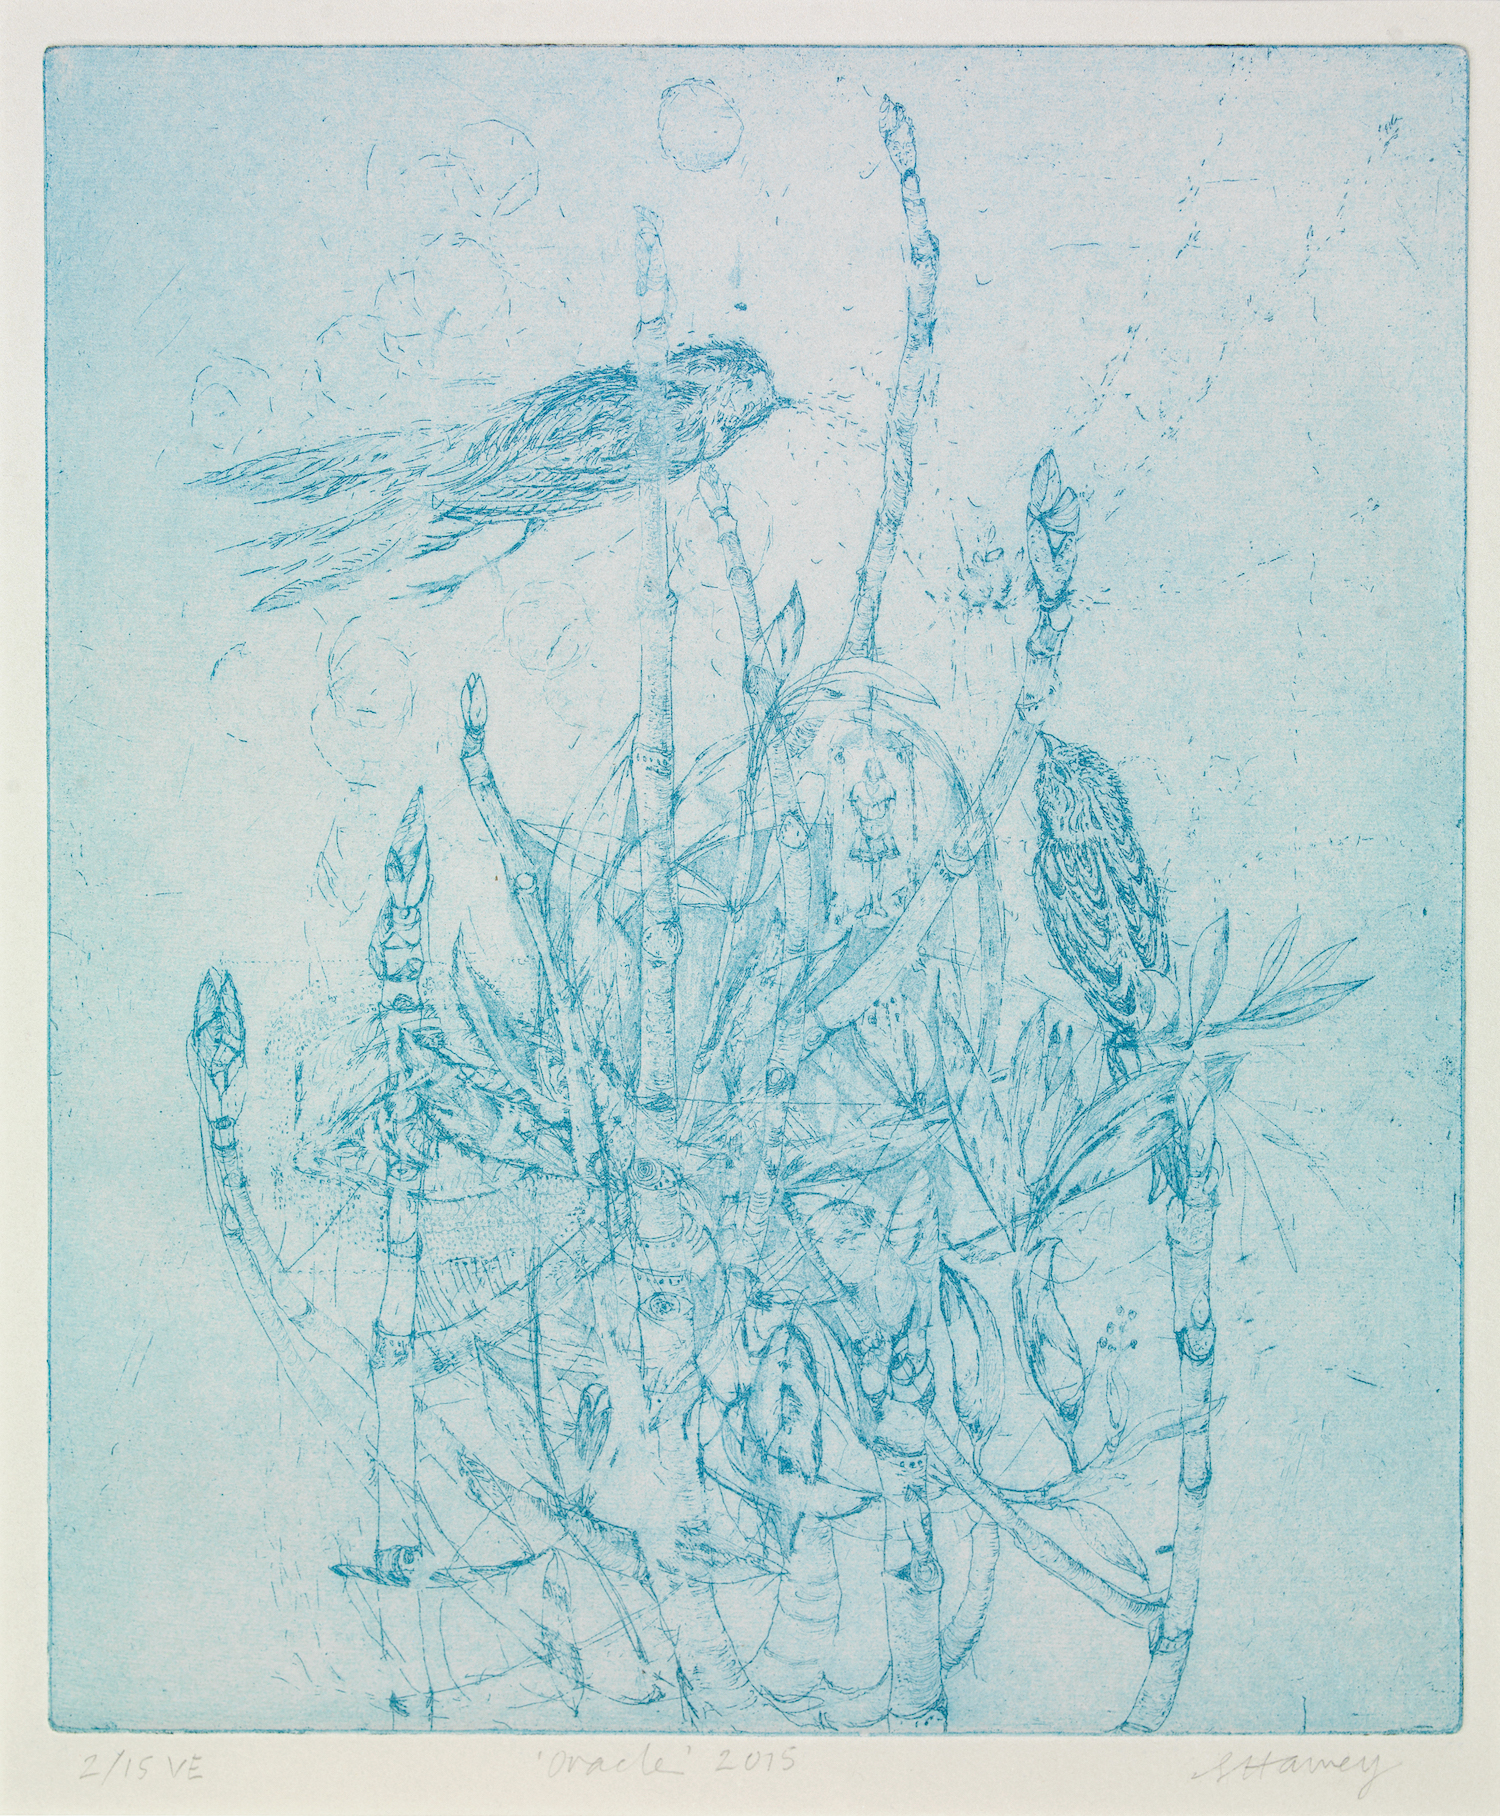 oracle   hard-ground etching on BFK rives  2/15ve  34x29cm